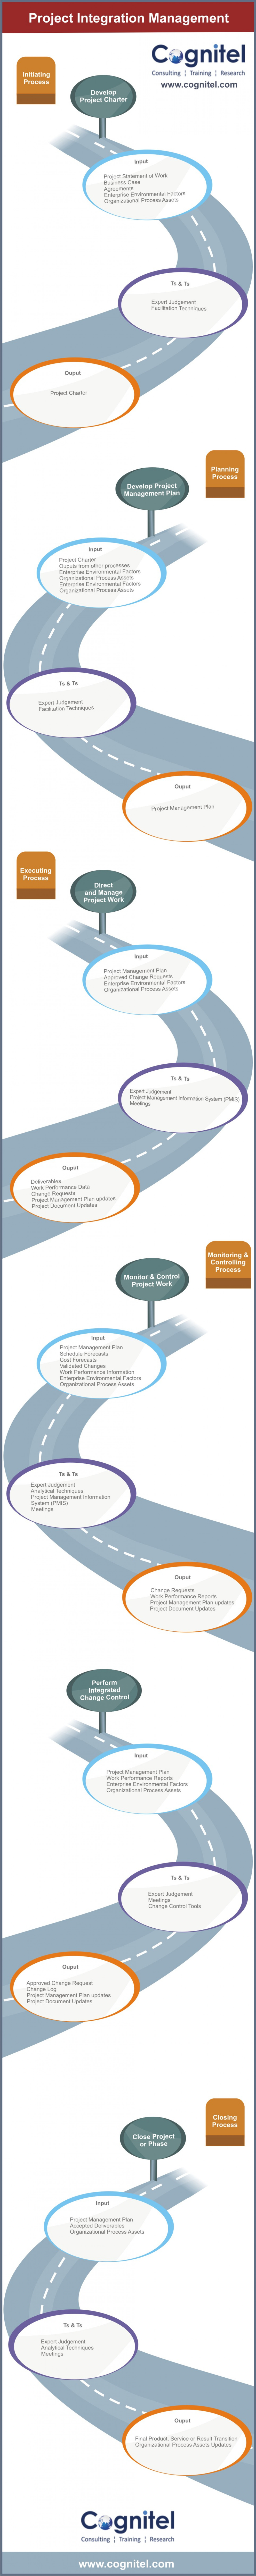 Project Integration Management Process - An Expert Guide By Cognitel Infographic